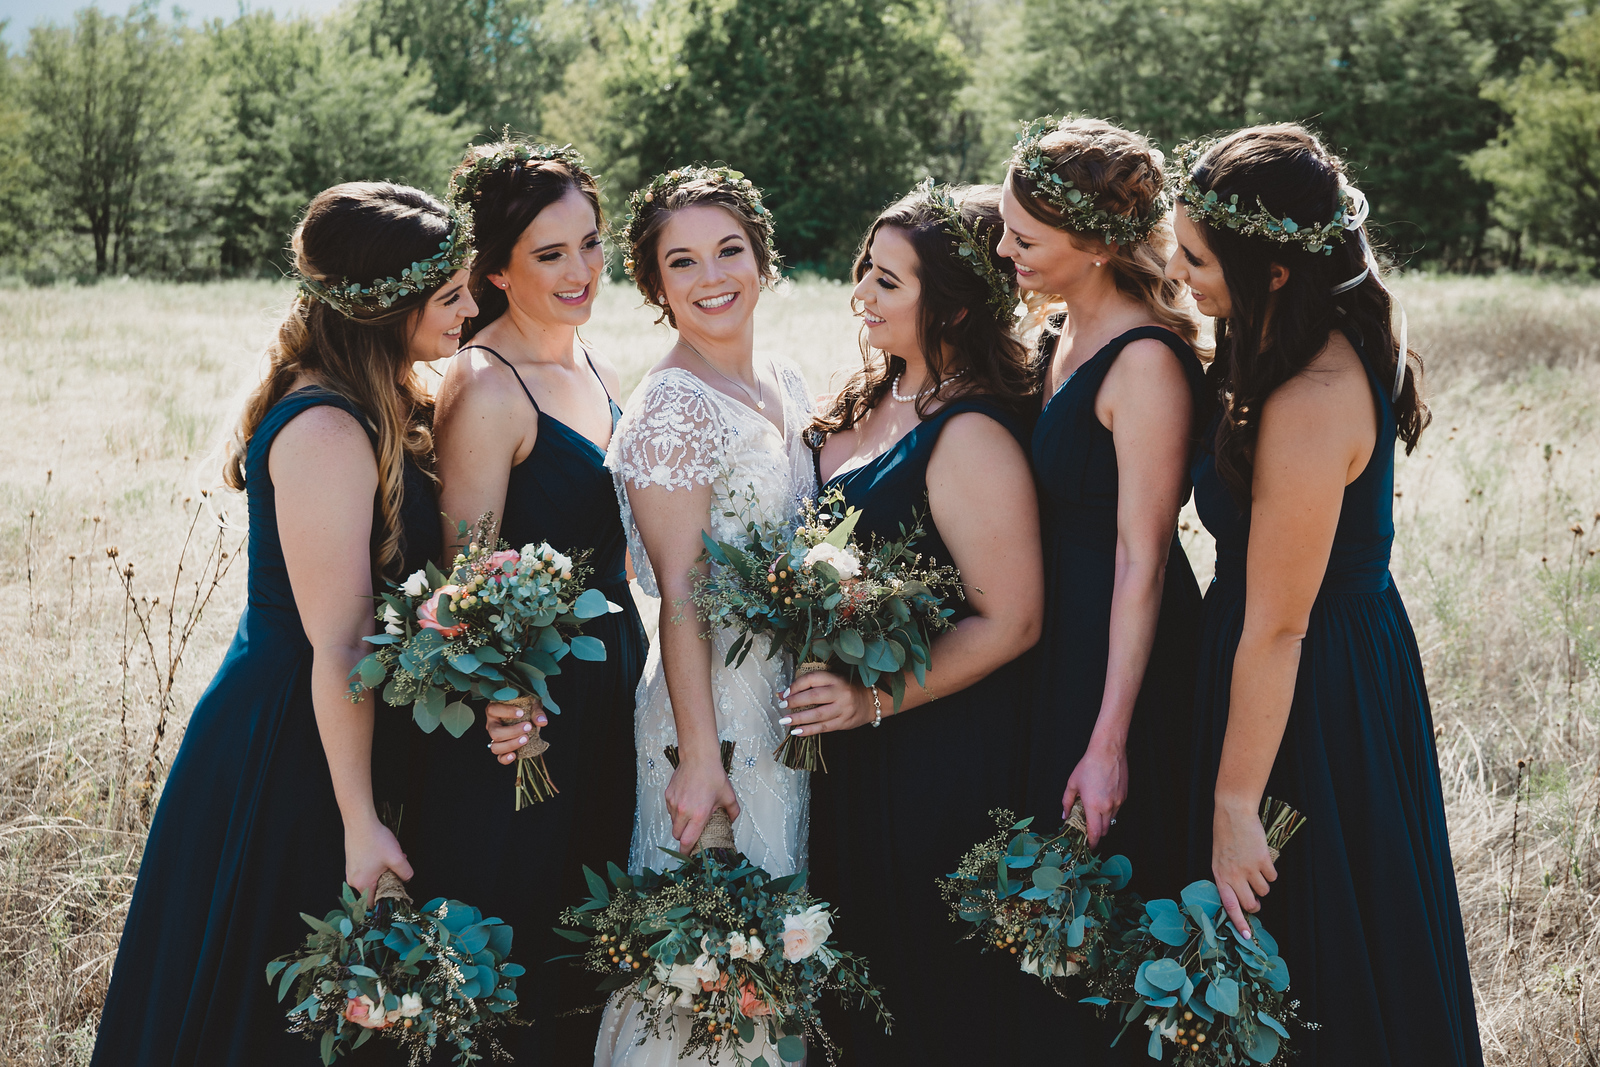 A bride wearing a lace wedding is surrounded by her five bridesmaids wearing green dresses